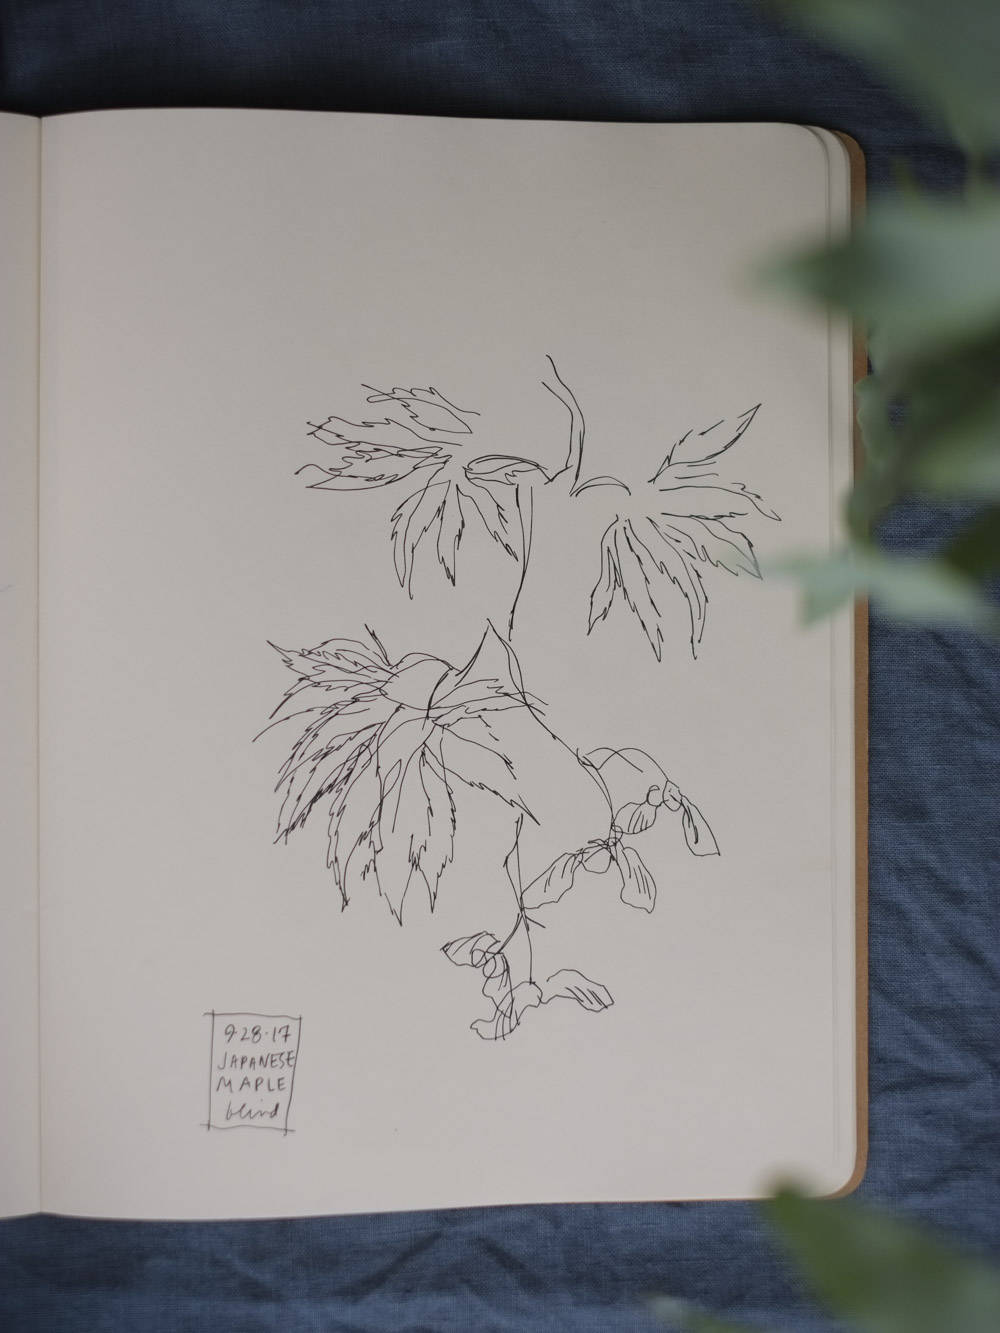 Erin_Ellis_daily_botanical_blind_drawings_sept_2017.jpg-32.jpg